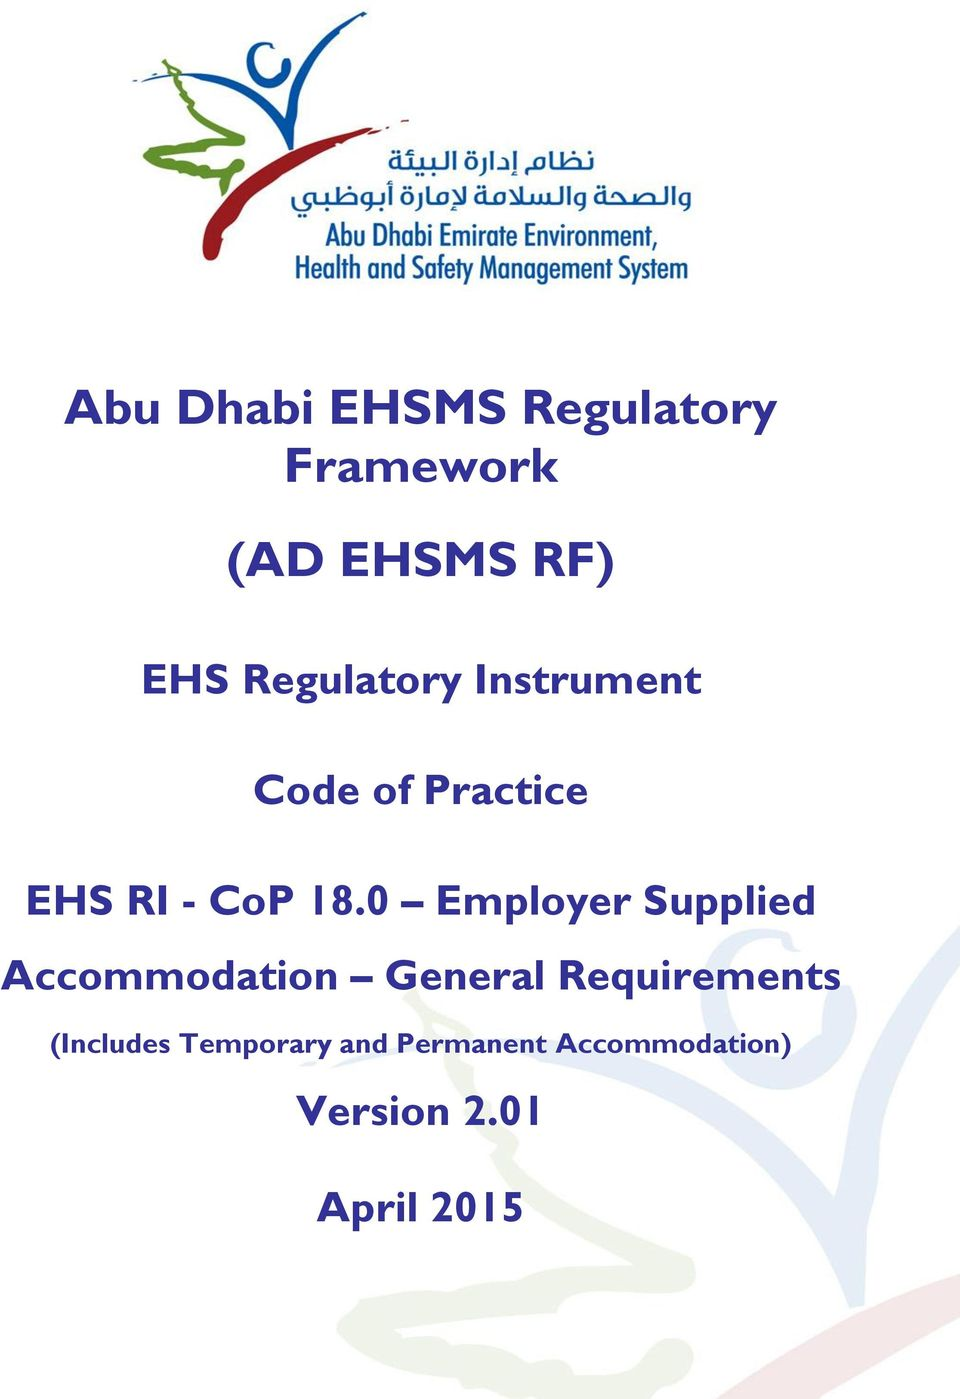 Abu Dhabi EHSMS Regulatory Framework (AD EHSMS RF) - PDF